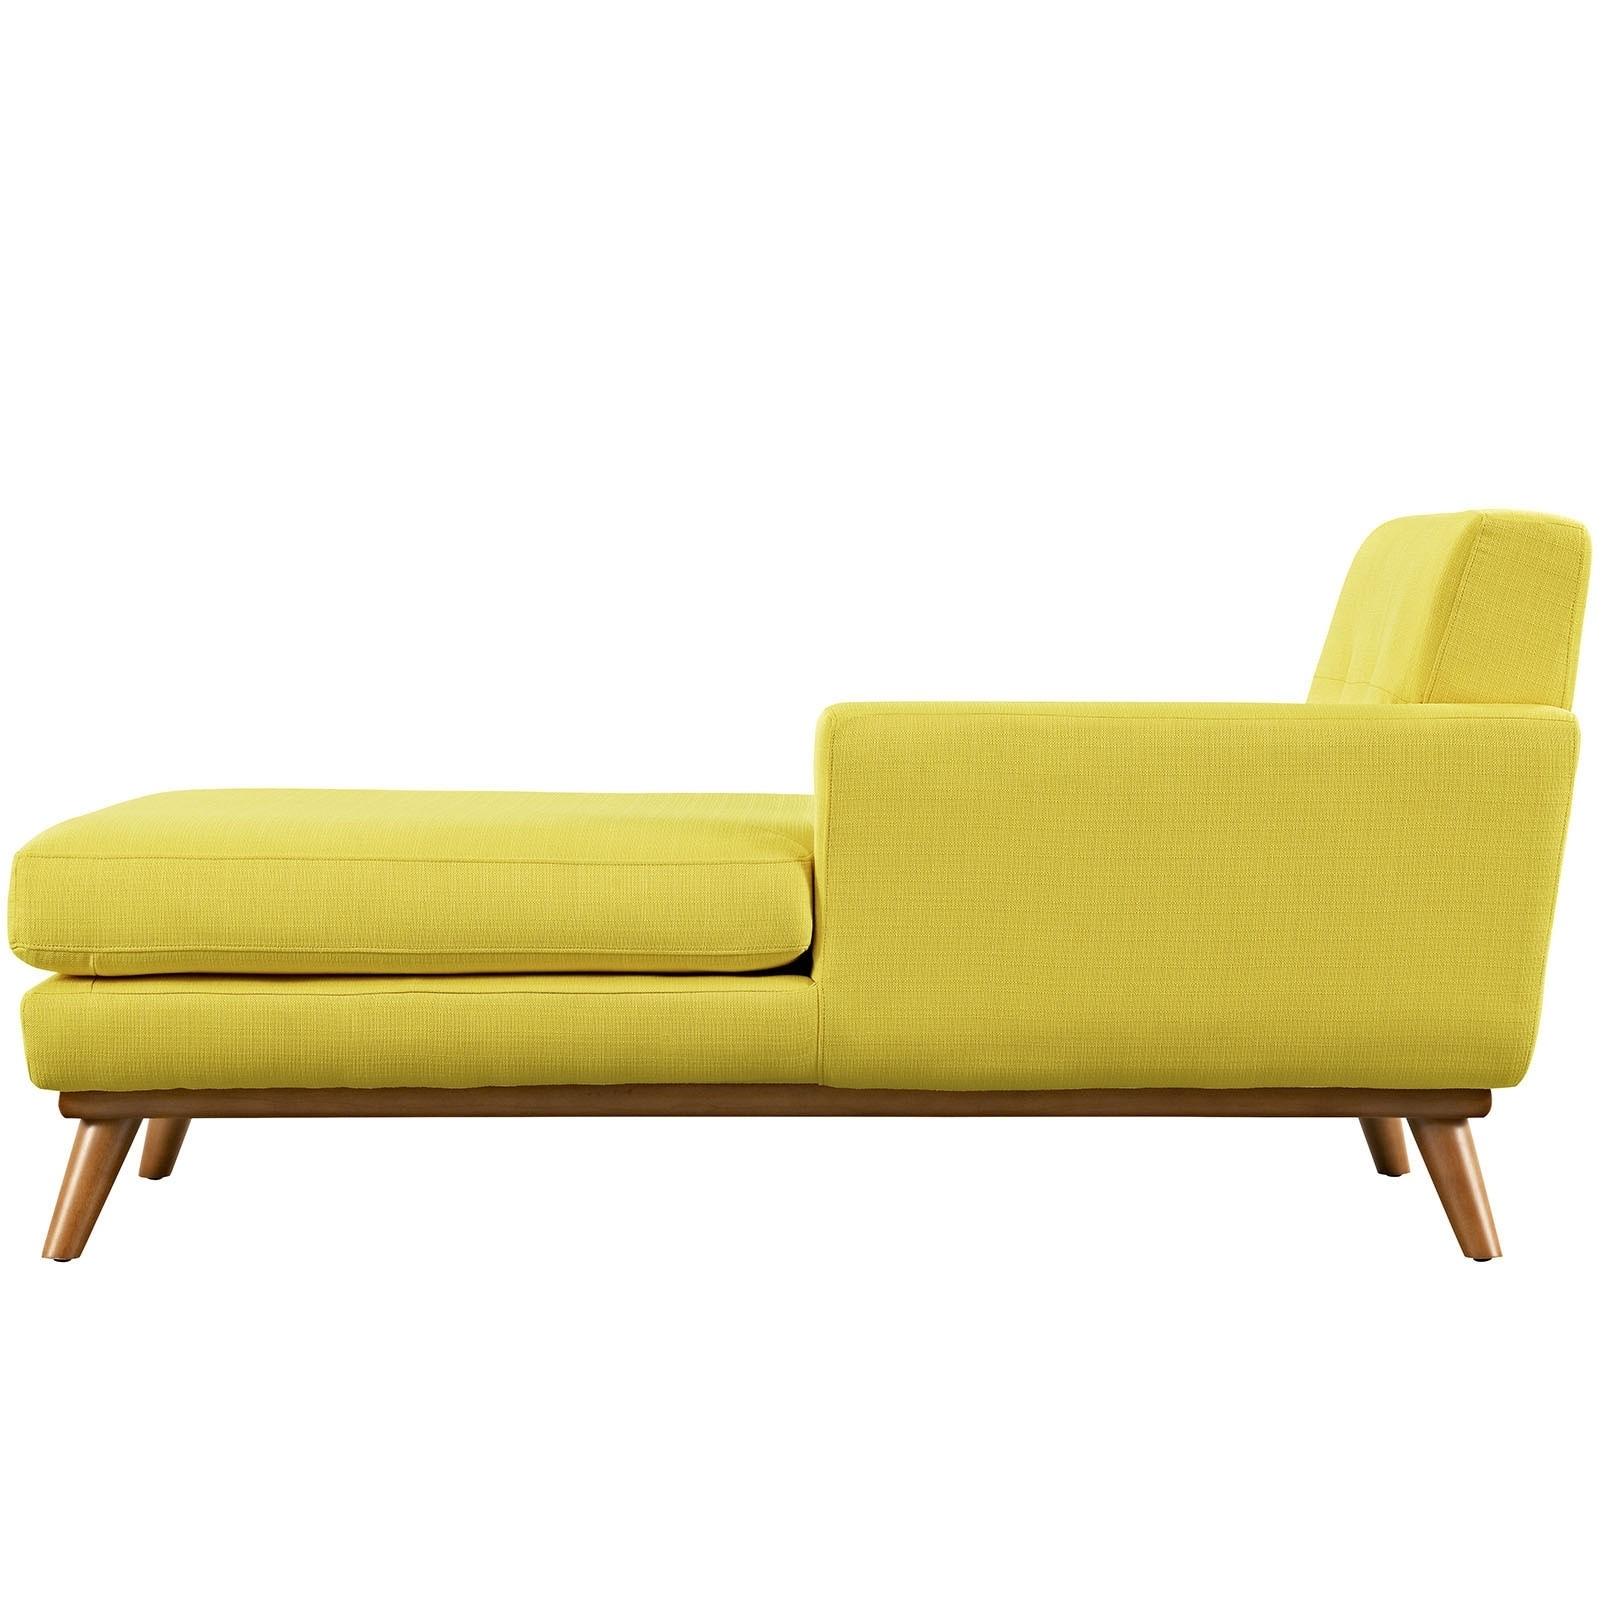 Latest Yellow Chaise Lounges For Engage Left Arm Mid Century Chaise Lounge – Free Shipping Today (View 14 of 15)